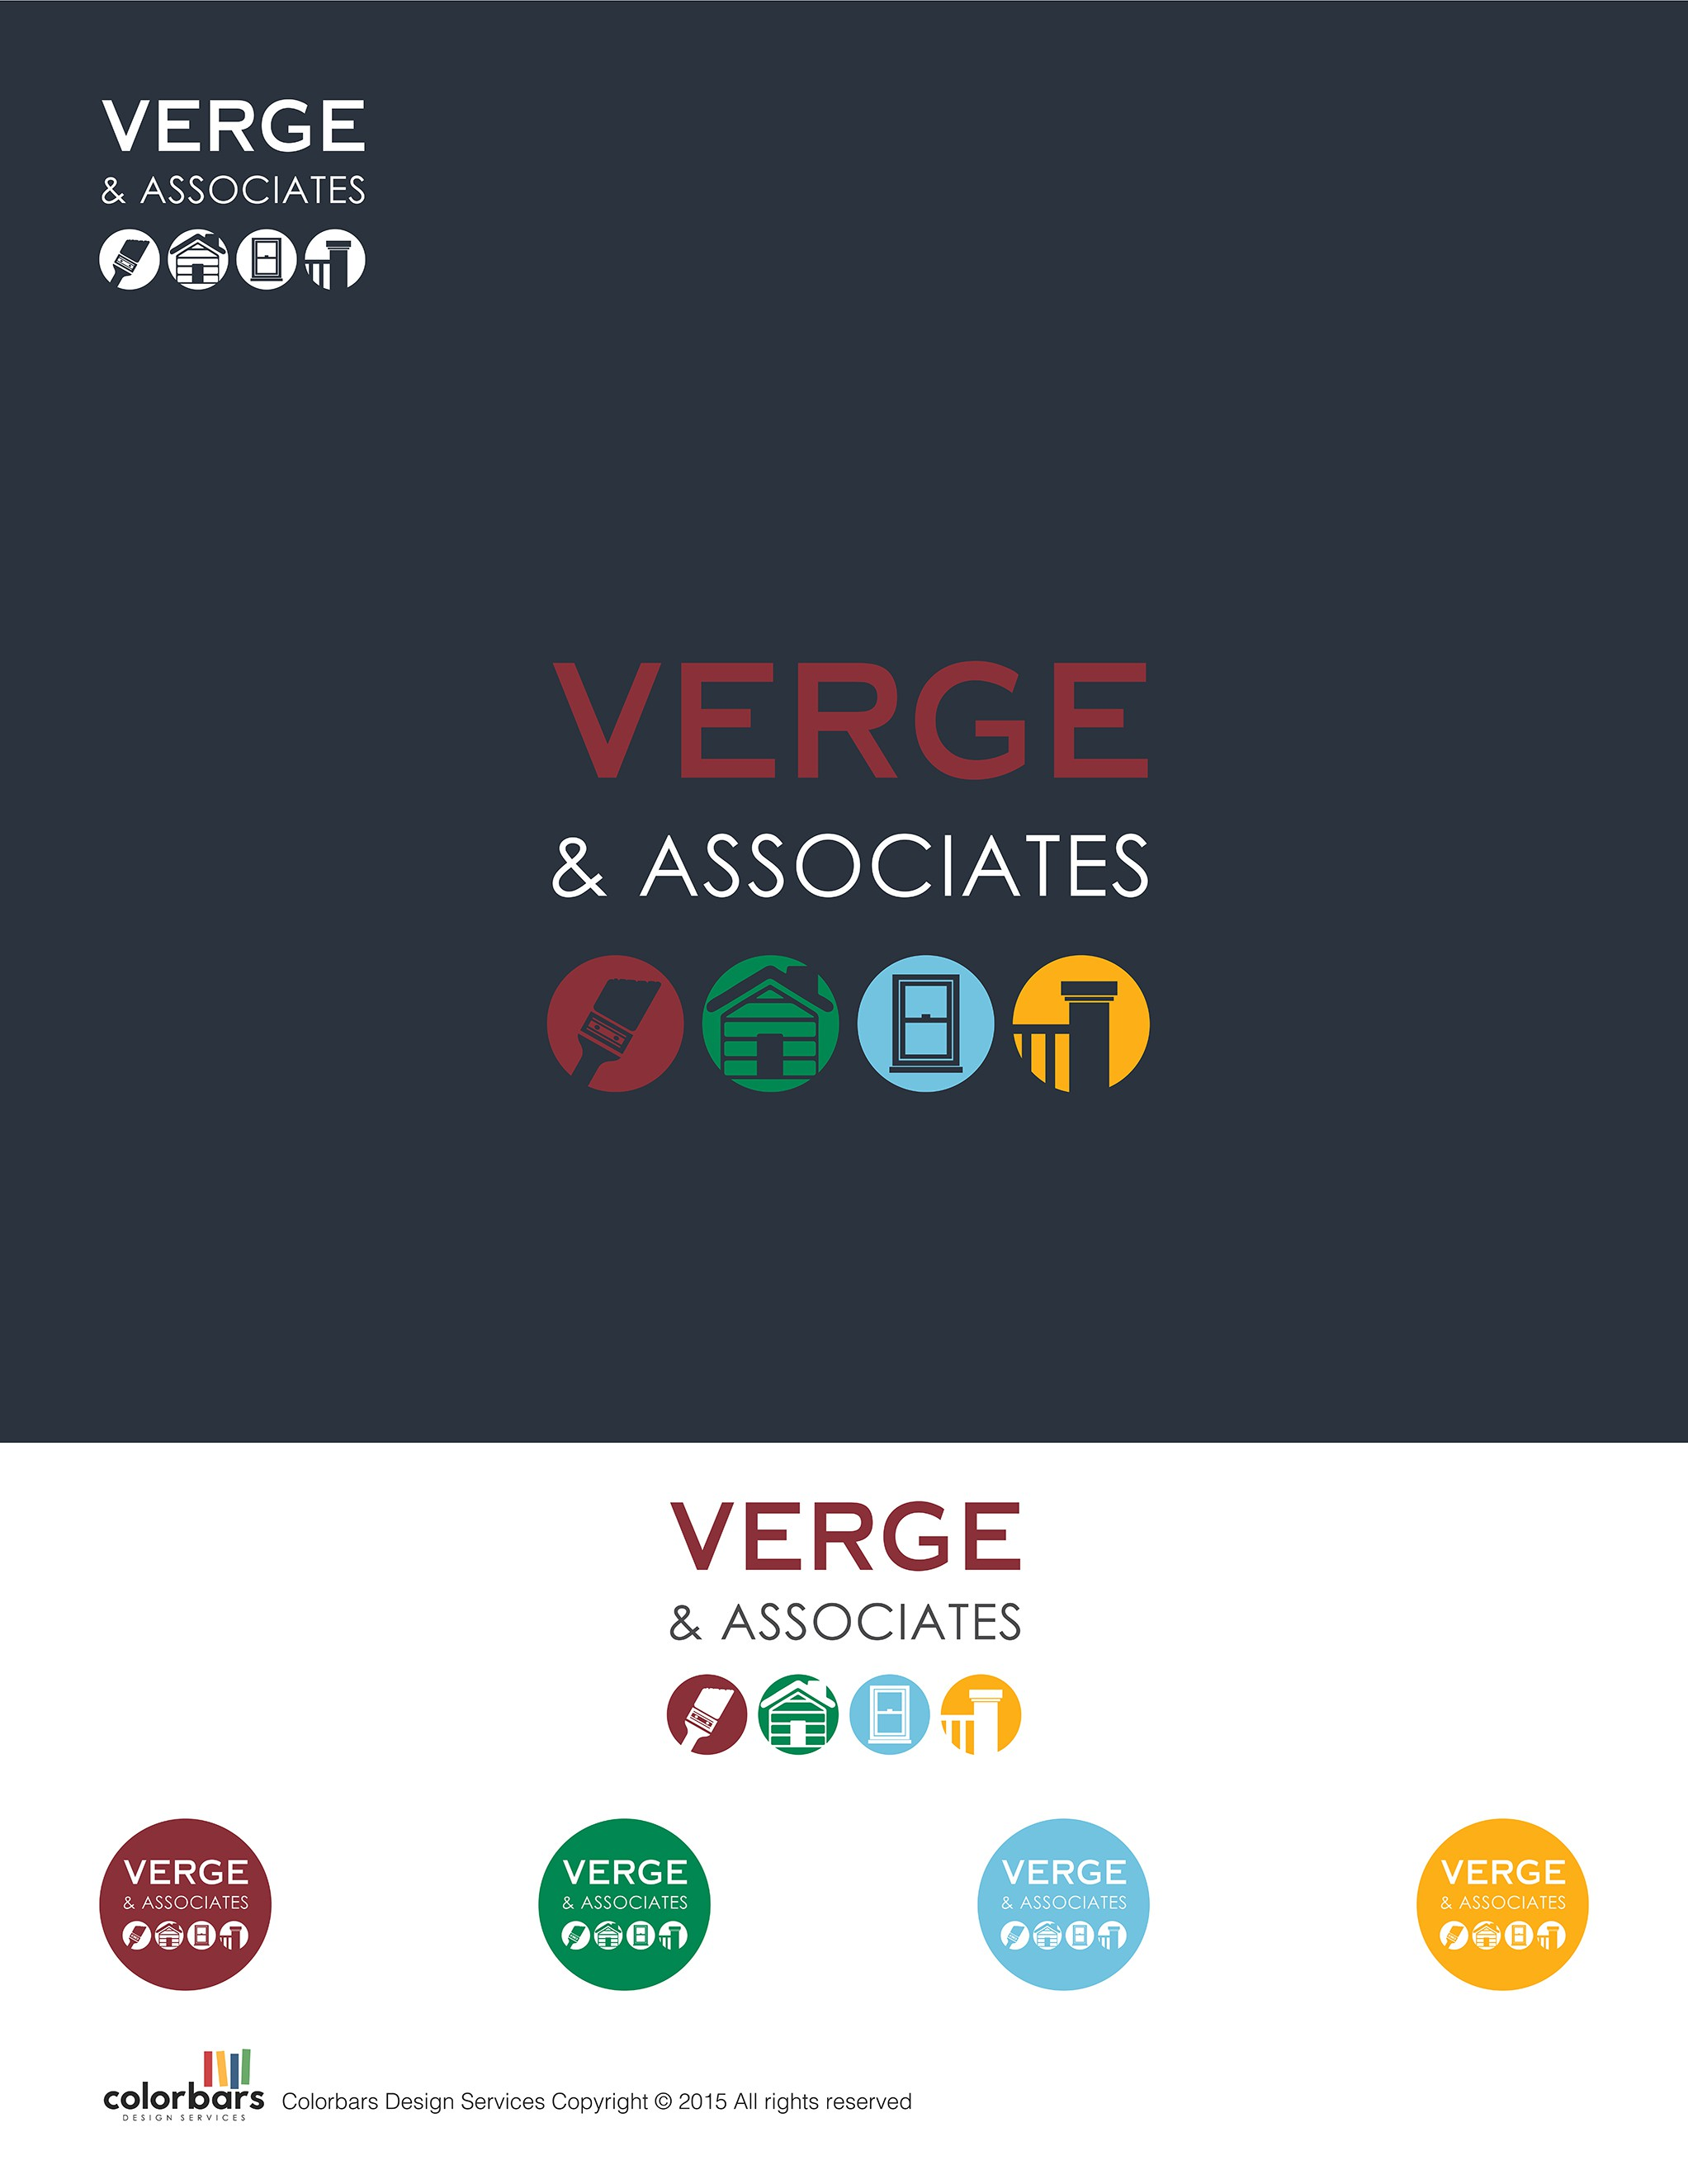 Verge Logo design - please read detailed notes in other section!